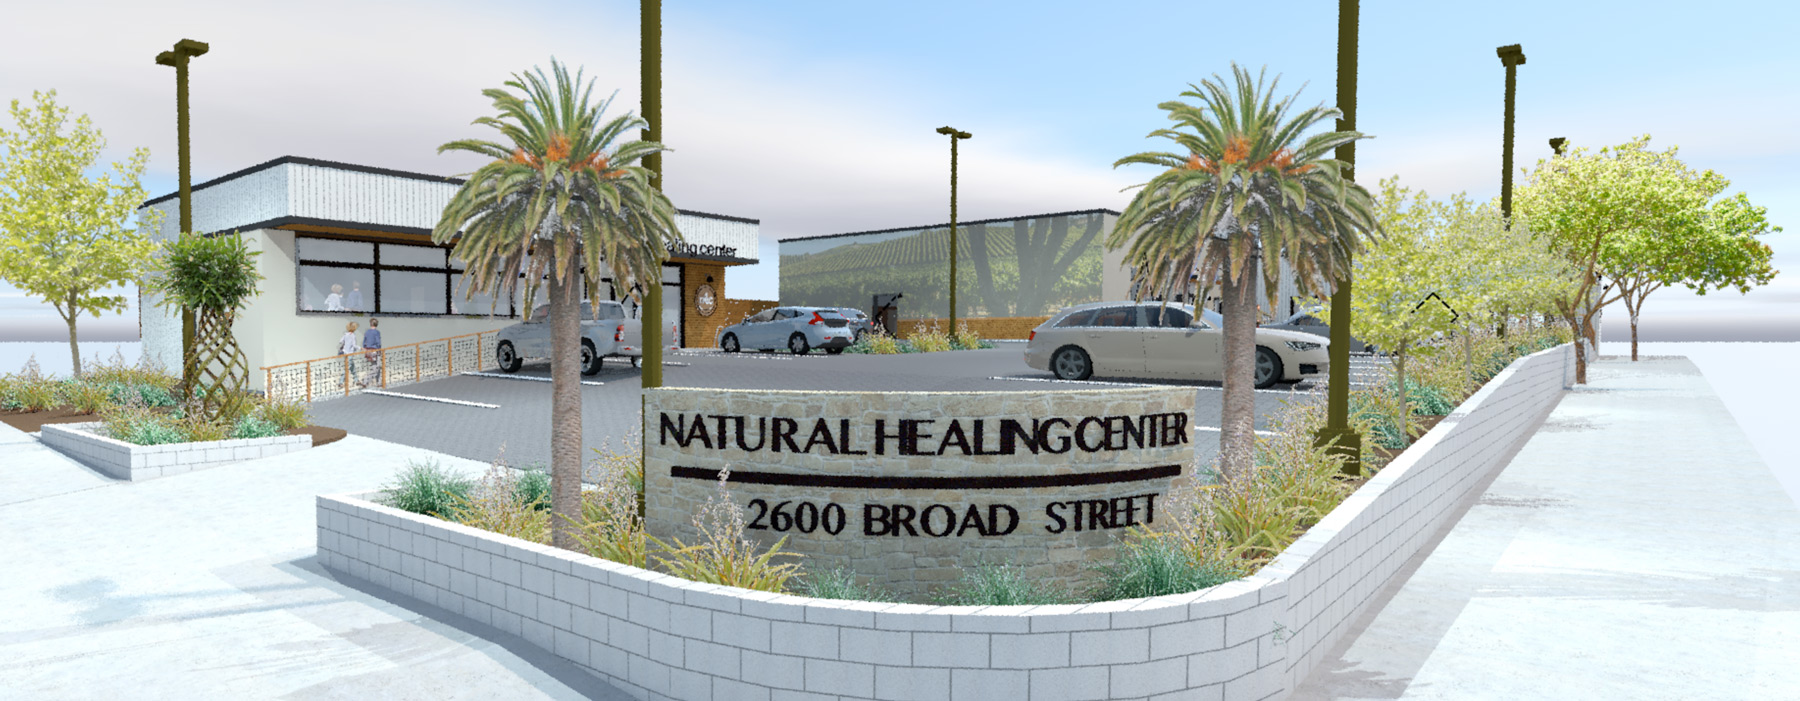 Natural Healing Center SLO CRSA Architecture